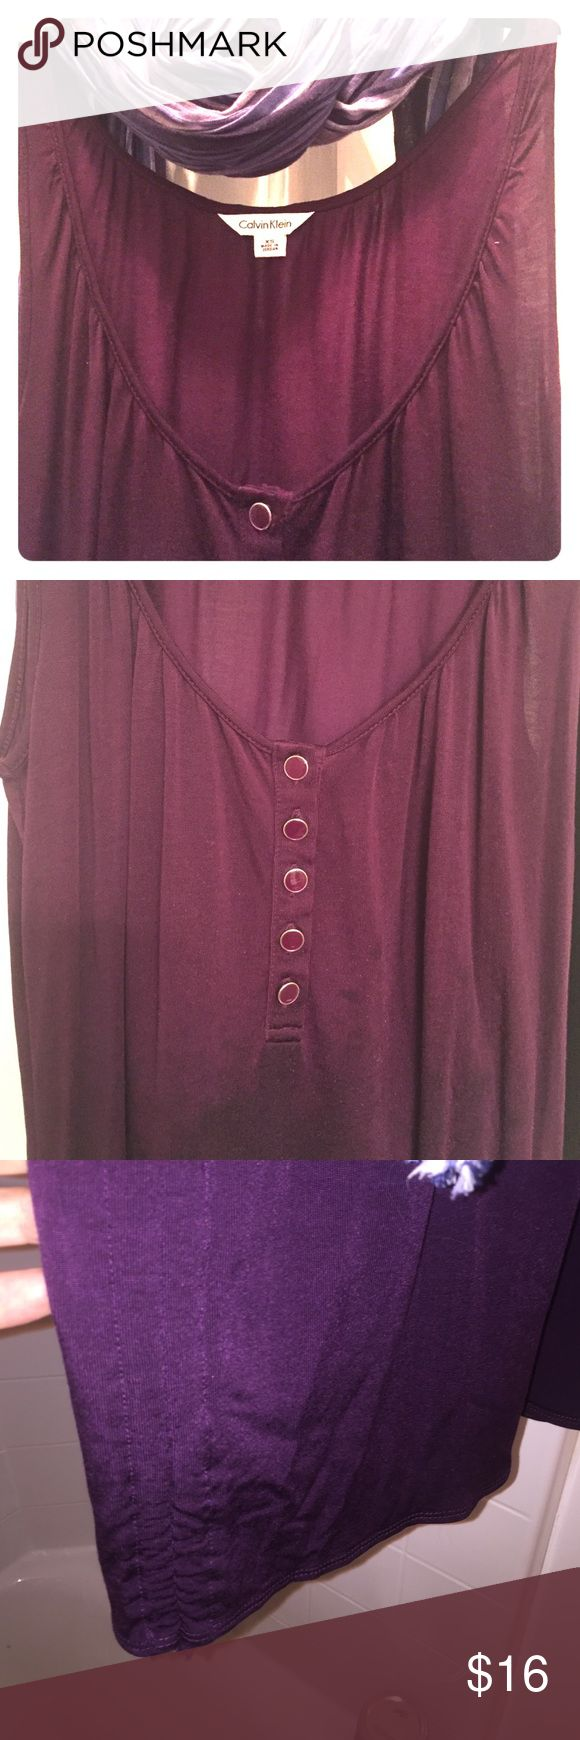 Deep Purple Long Calvin Klein Tank Long deep purple Calvin Klein extra small tank. Tank is longer with runched sides. Buttons going down scoop of collar. Condition like new. Color non faded .. perfect! No holes or rips. Great everyday shirt or lounging. You can also dress it up for a night out with belt and jeans or skirt throw a light jacket over it or crop sweater and you are ready to rock this tank your way! Calvin Klein Collection Tops Tank Tops